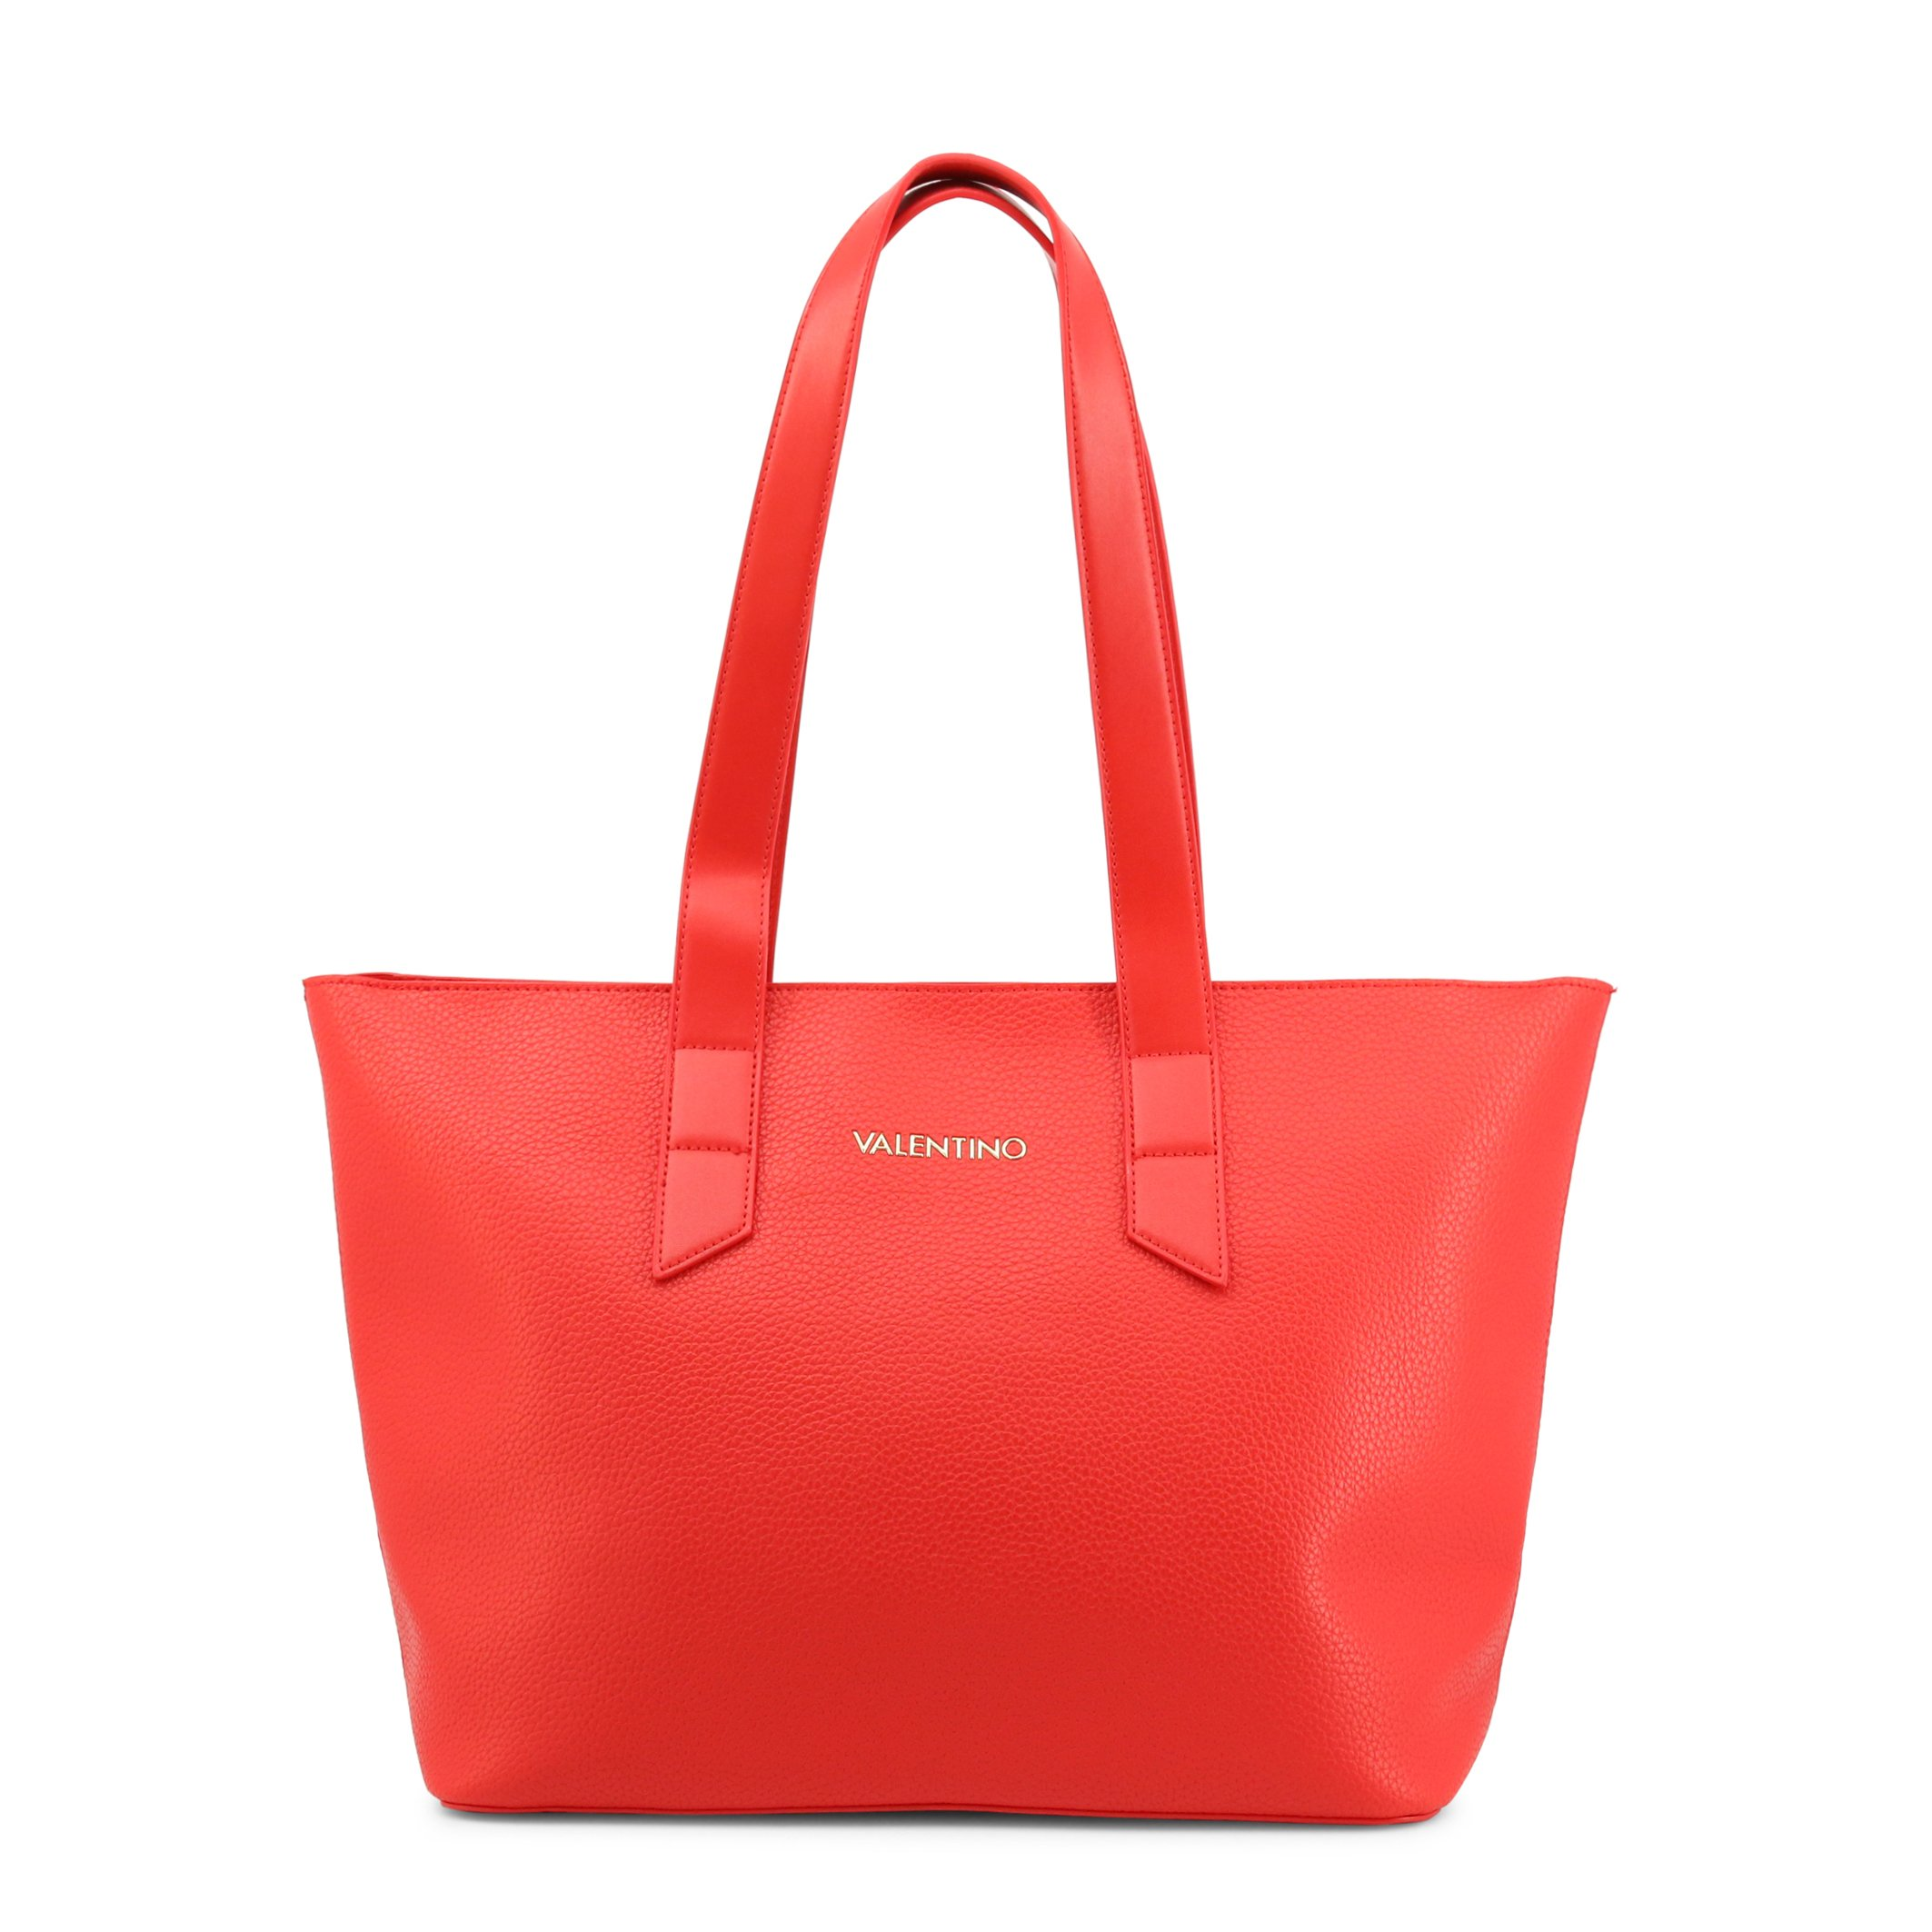 Valentino by Mario Valentino Women's Shopping Bag Various Colours POTSDAMER-VBS4KH01 - red NOSIZE